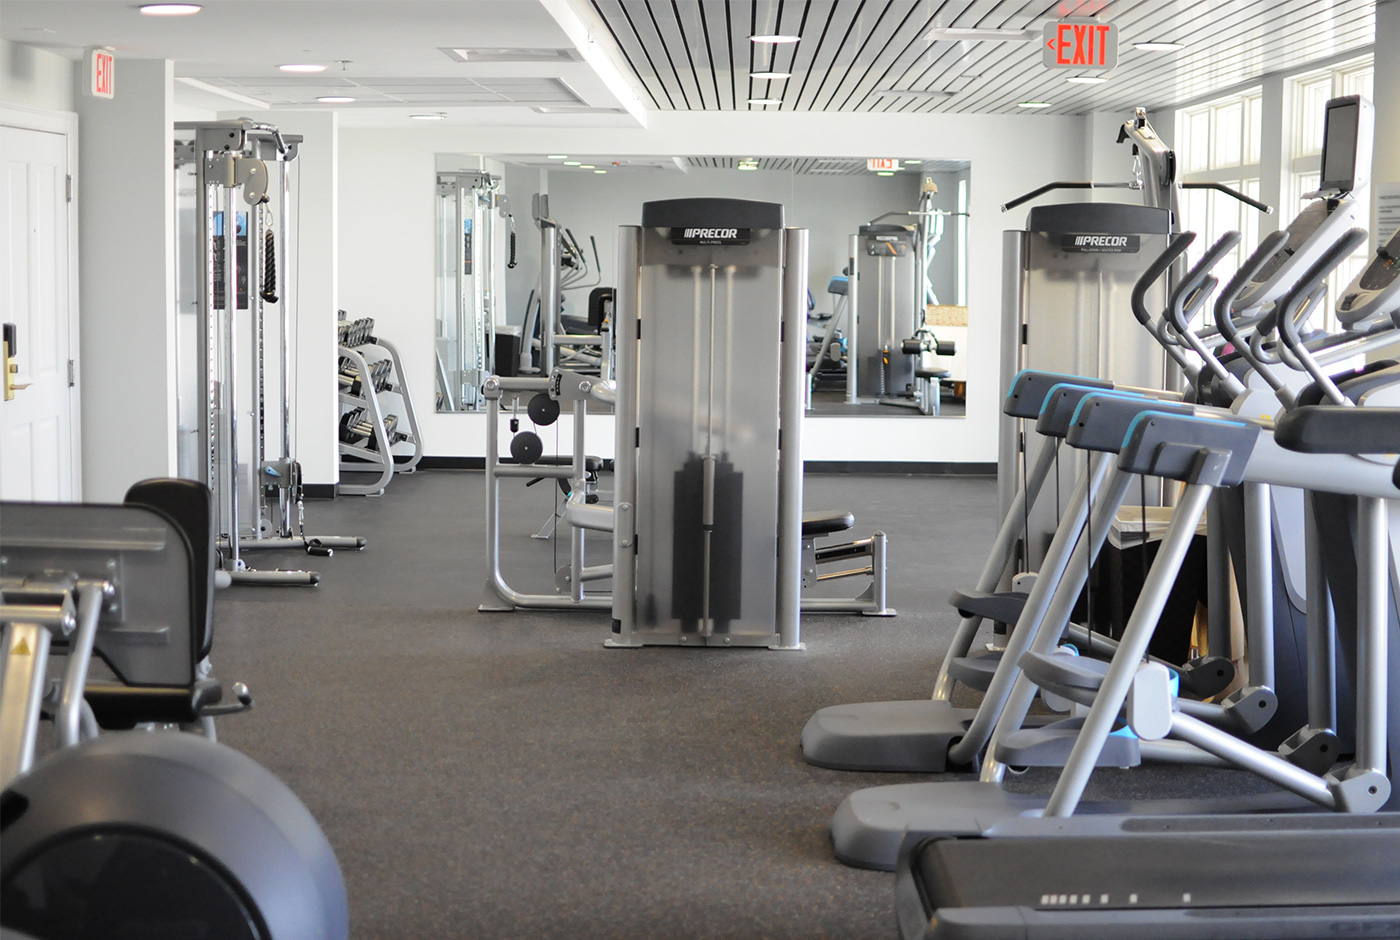 Harborside Resort Gym and Fitness Center